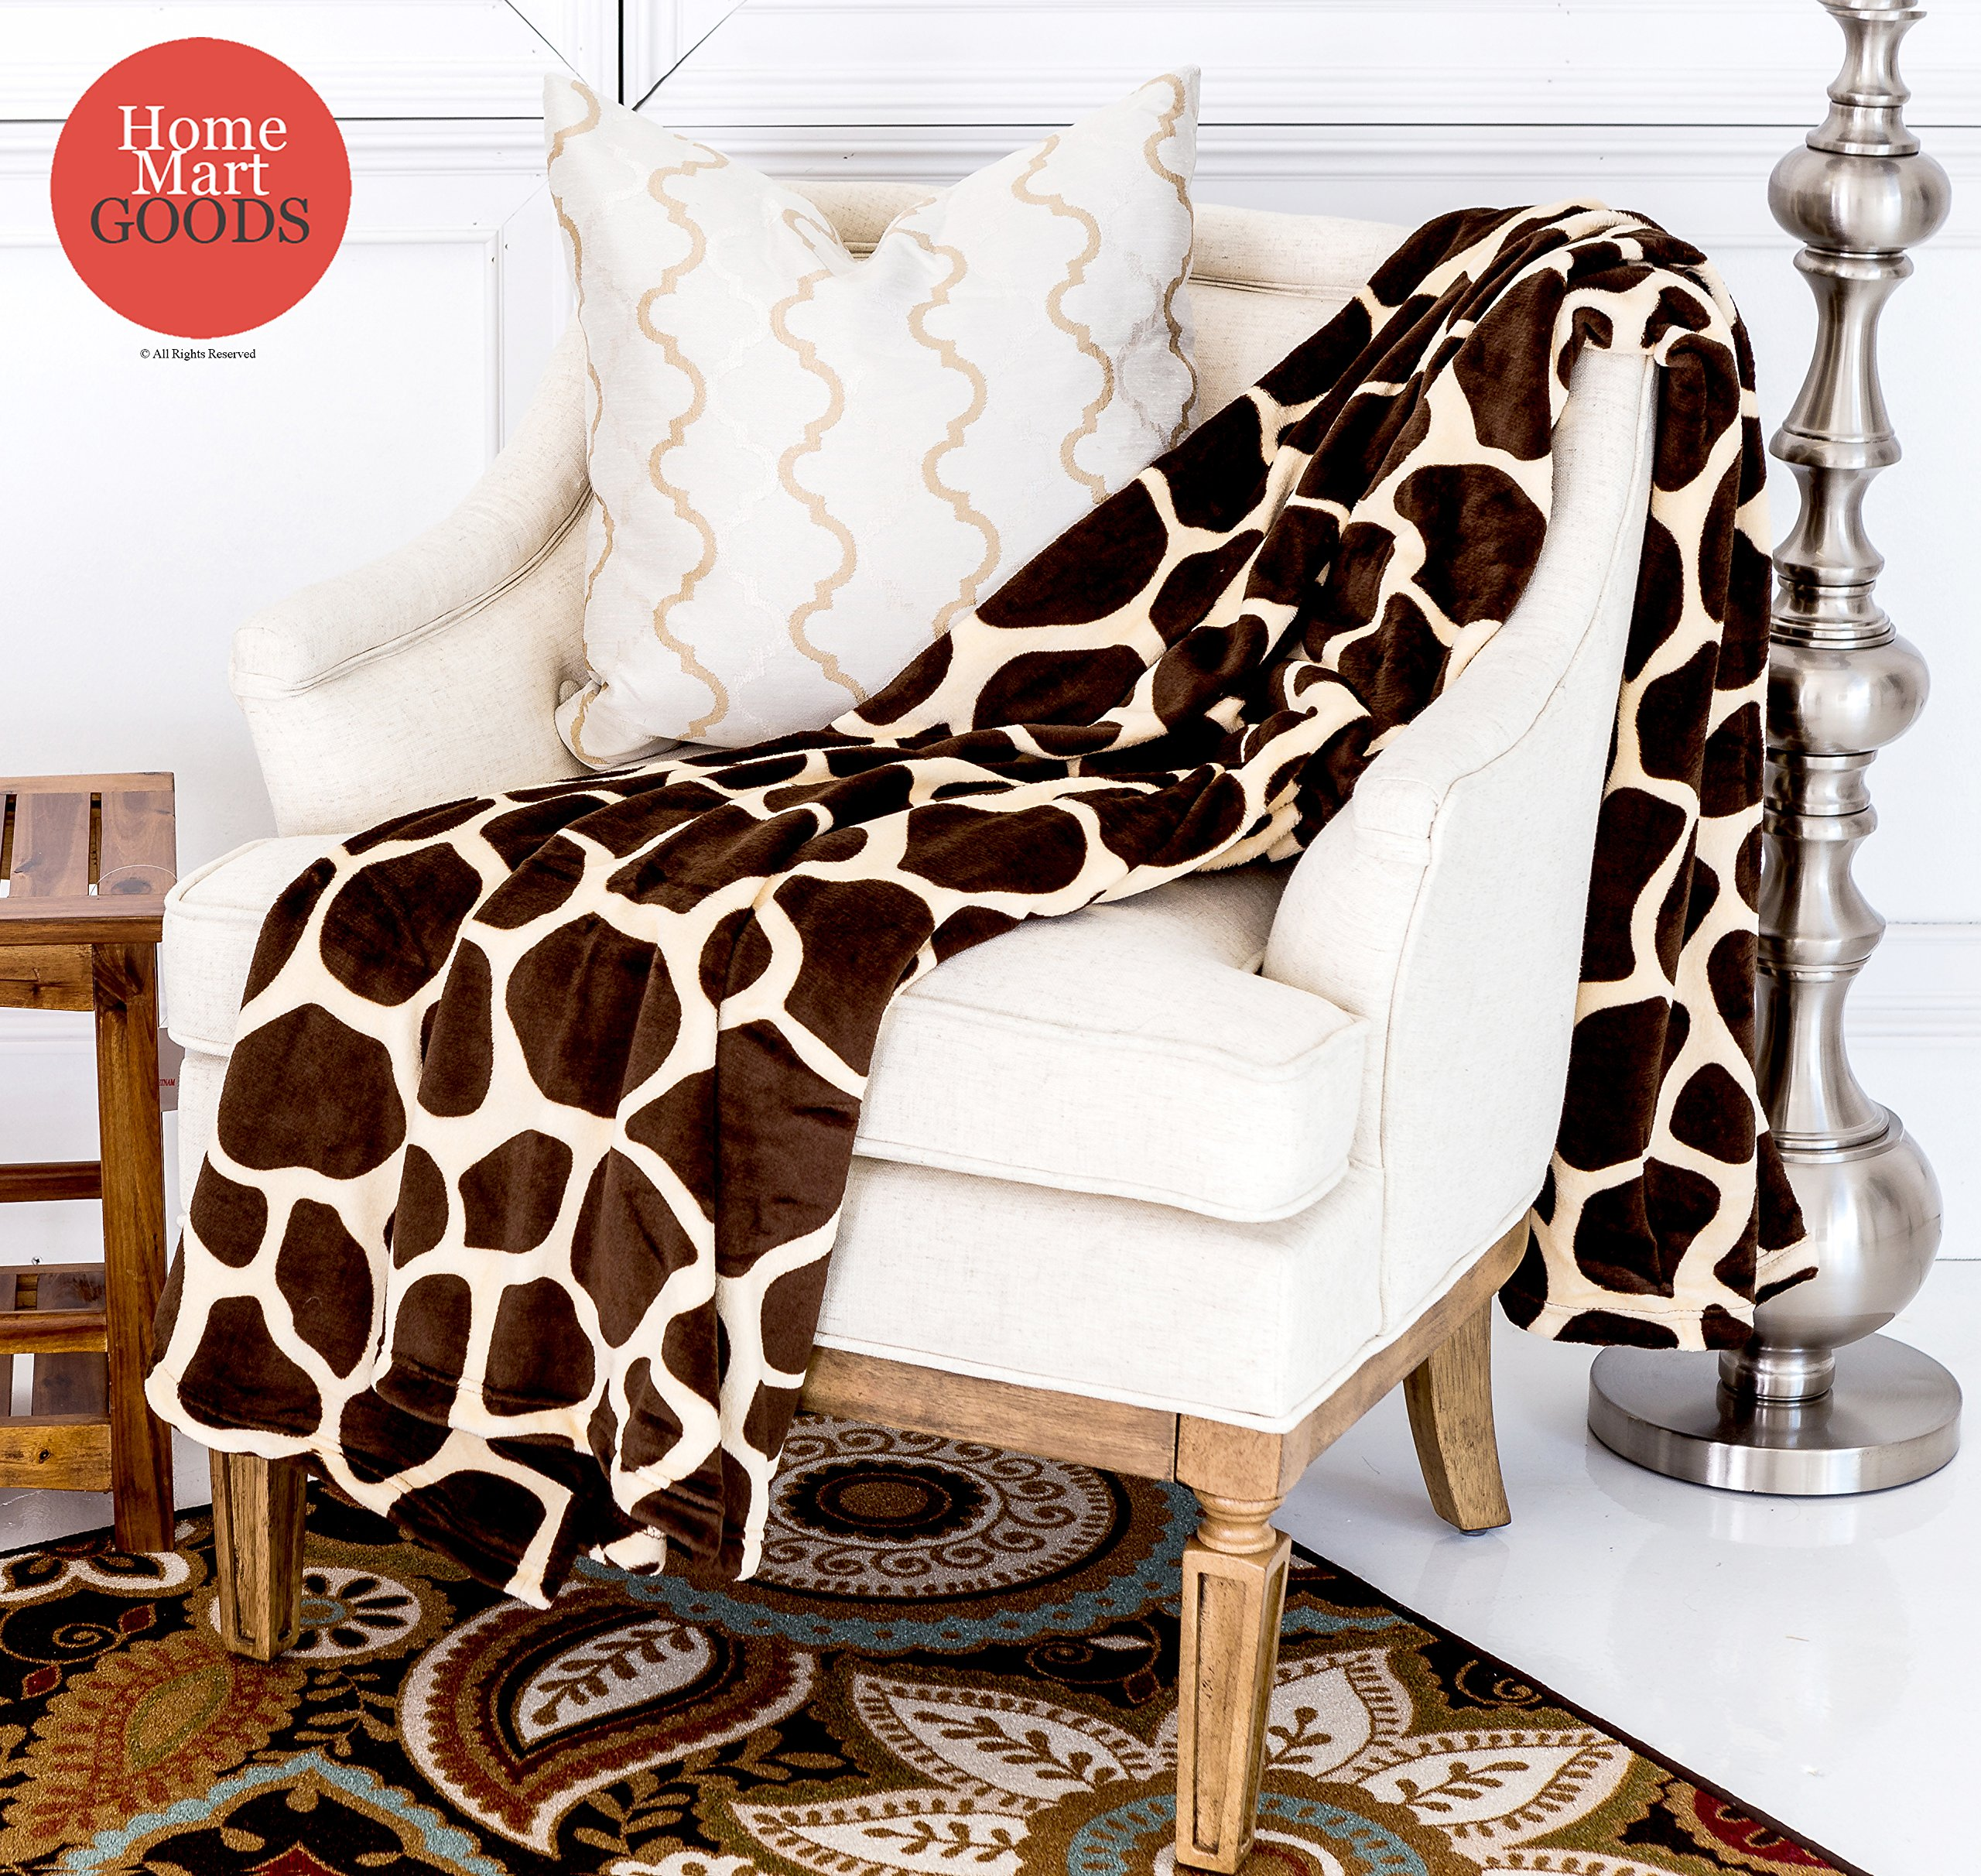 "Home Must Haves Ultra Soft Micro Plush Flannel Blanket Luxurious Flannel Fur All Season Premium Bed Blanket (Queen 80""x80"", Giraffe Skin Print) - Super Soft Flannel Fabric! SIZES: This modern Super Soft Warm Bed Blanket is Queen size. 80""x80"" MATERIAL: 100% Polyester microfiber, providing comfort and softness to the touch. - blankets-throws, bedroom-sheets-comforters, bedroom - A1D  Hy1T4L -"